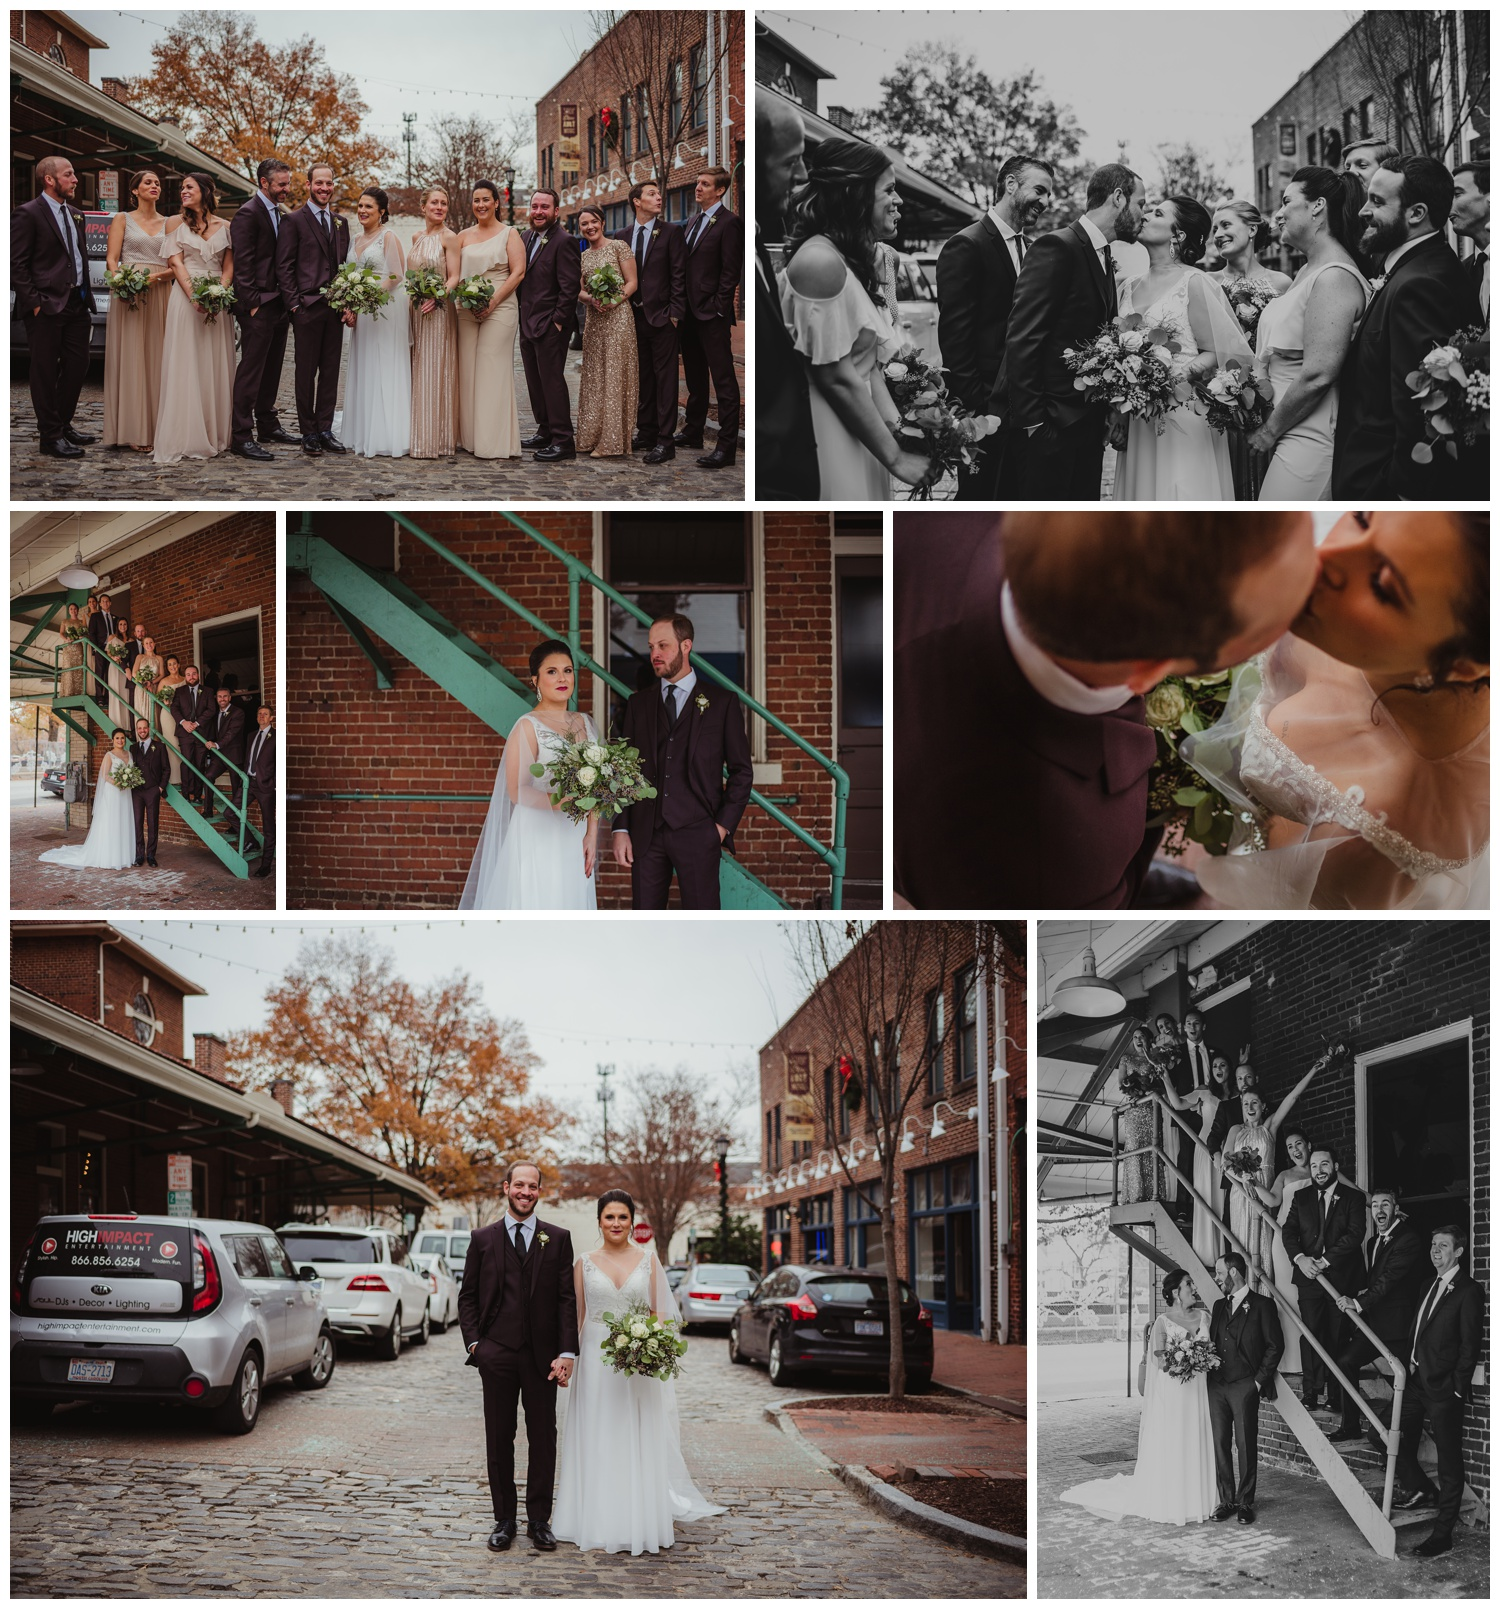 The bride and groom posed on the cobblestones outside with their bridal party before her wedding ceremony in downtown Raleigh, photos by Rose Trail Images.